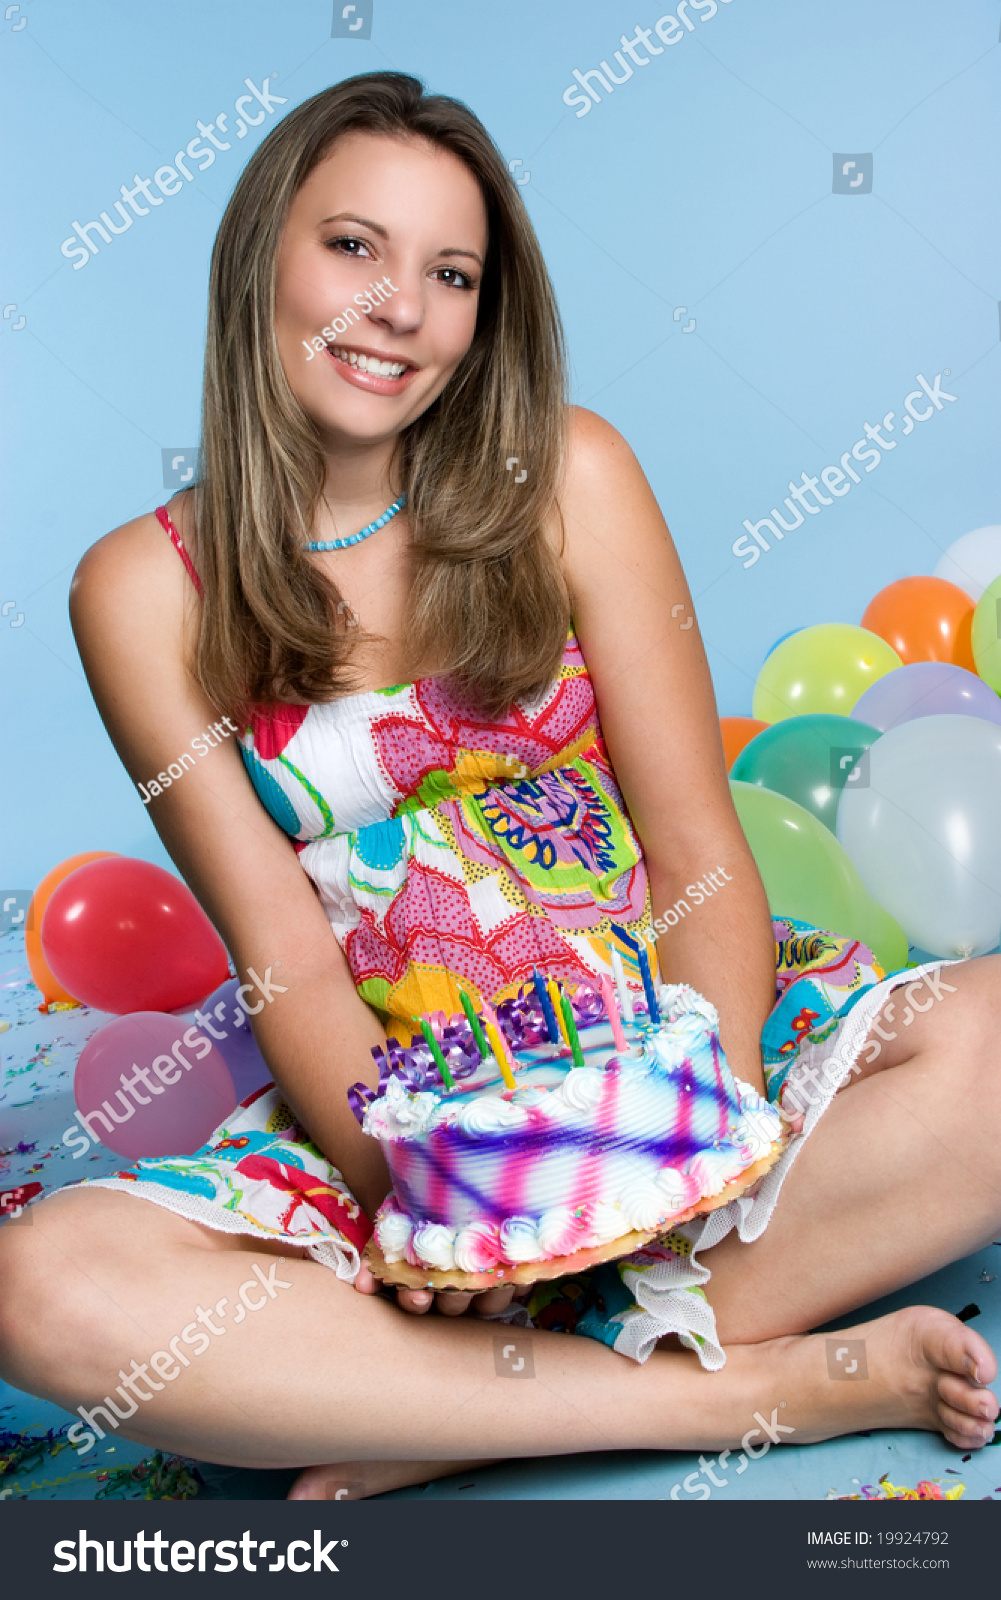 Pretty Girl Holding Birthday Cake Stock Photo 19924792